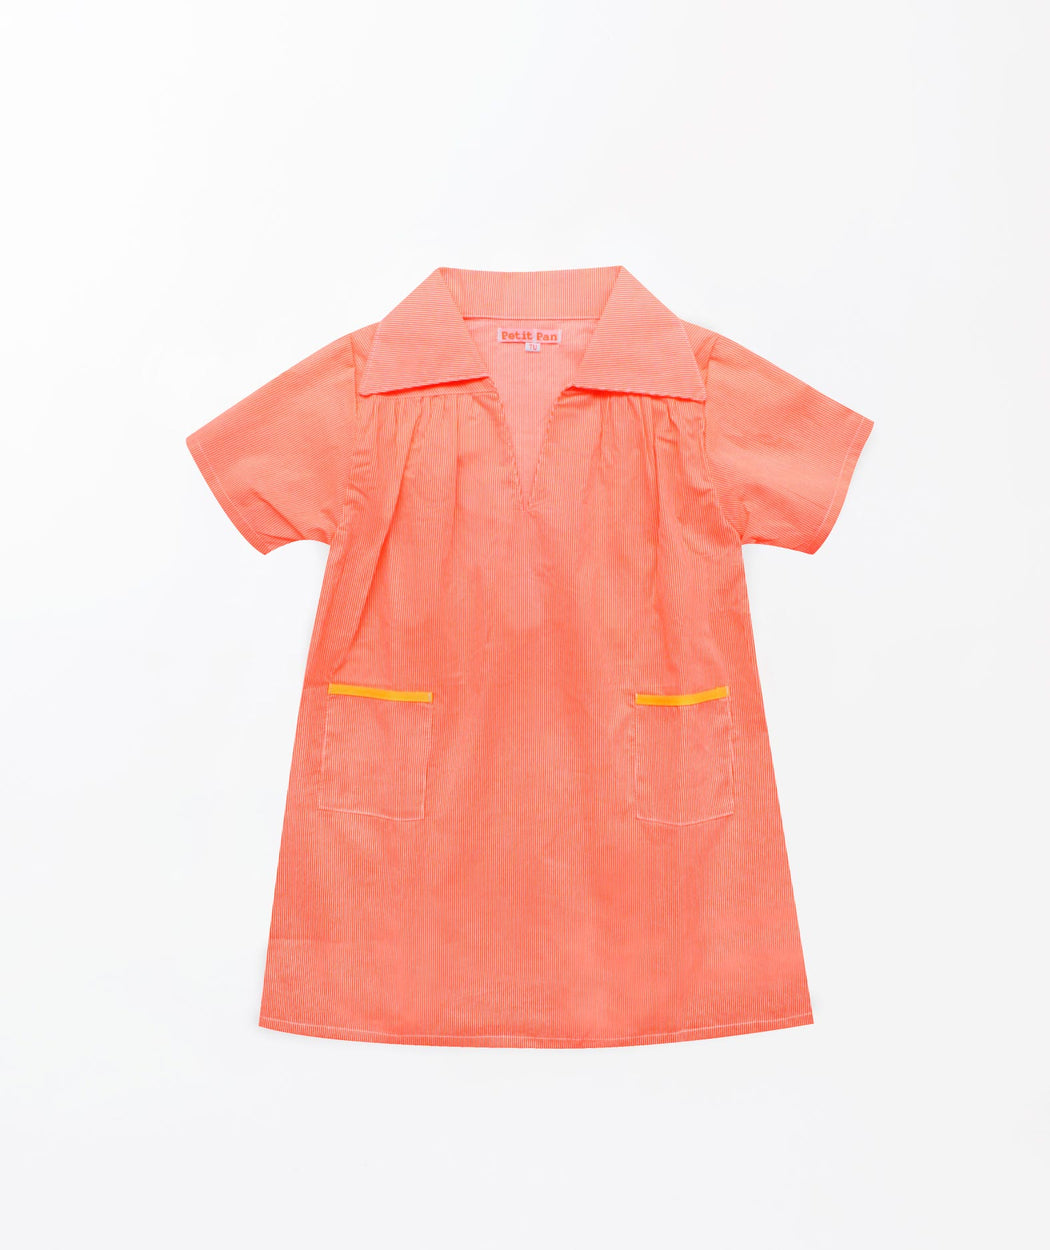 Robe gibus Rigato orange fluo